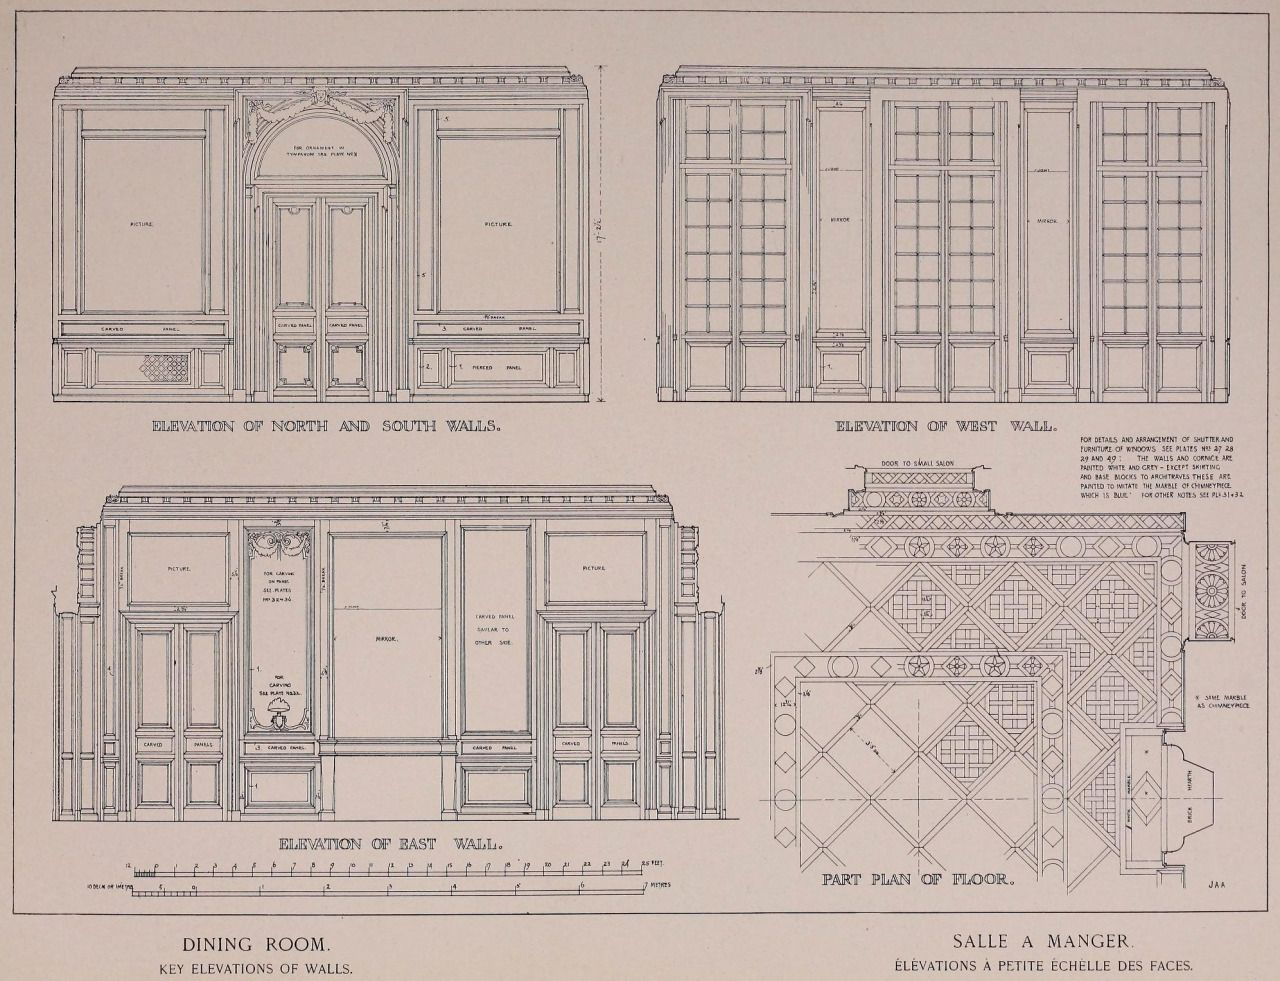 Elevations and partial plan of the dining room inside the for Dining room elevation